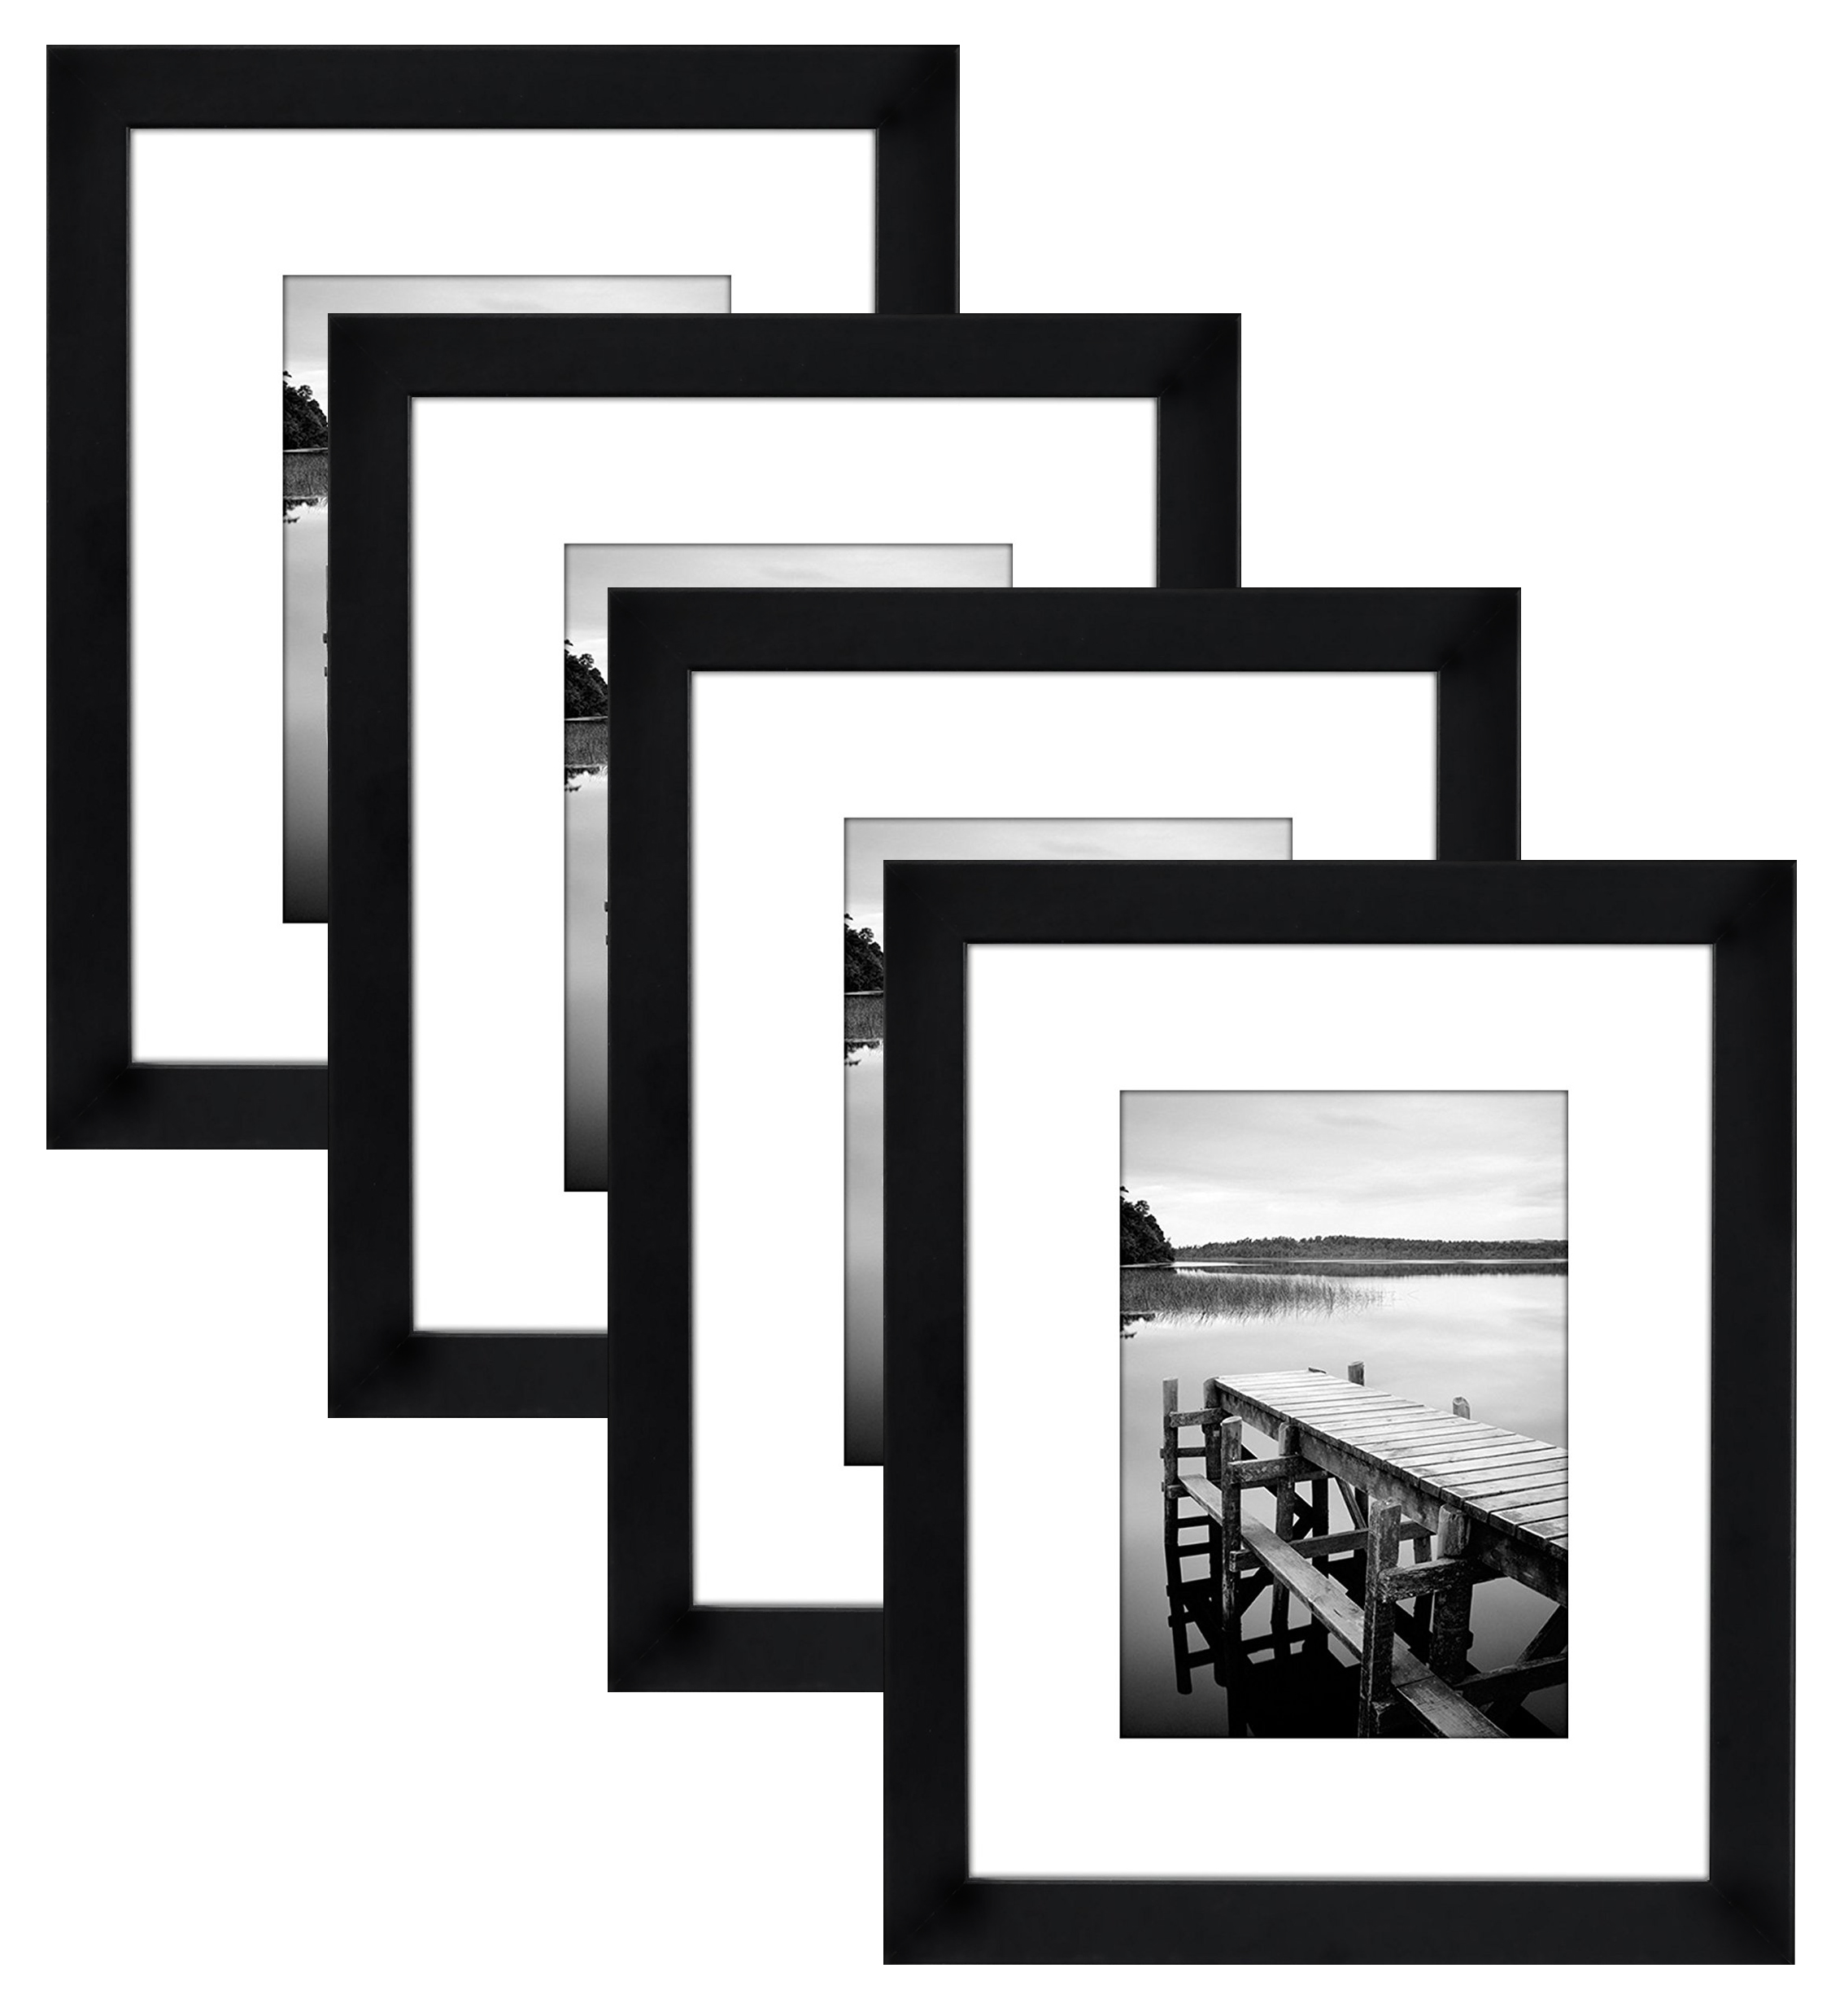 4 Pack 8x10 Black Picture Frames Display 5x7 Photos With Mats